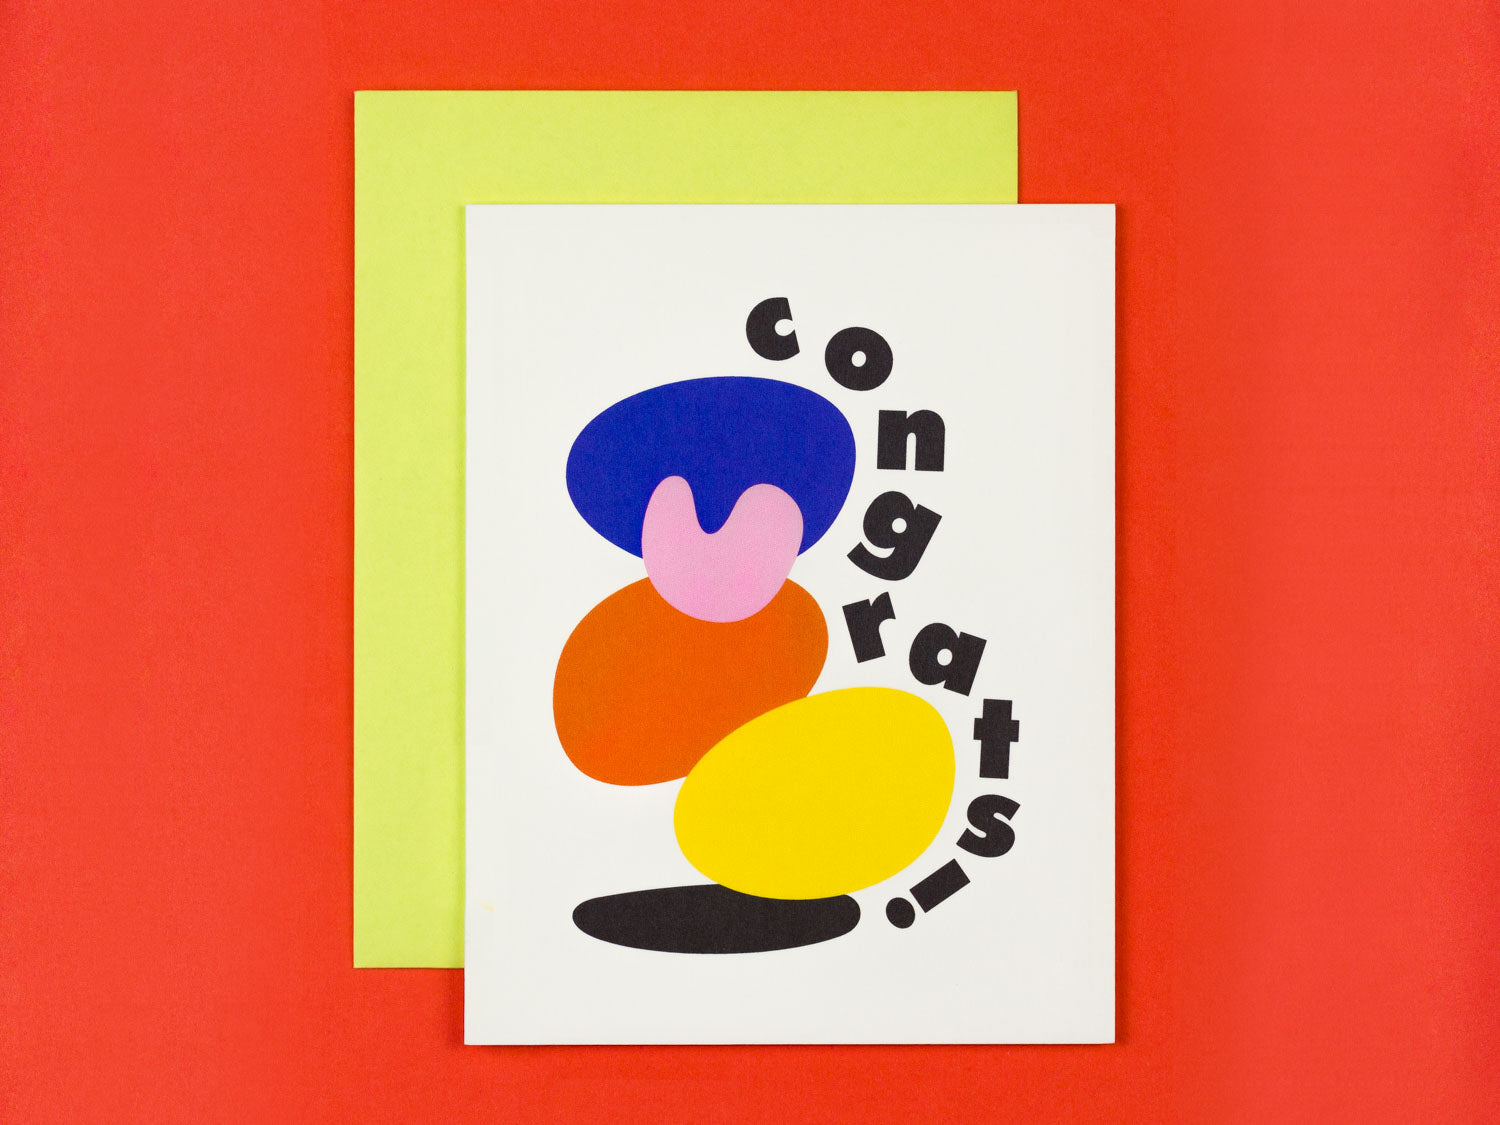 Congrats card with colorful stacked abstract shapes by My Darlin' @mydarlin_bk